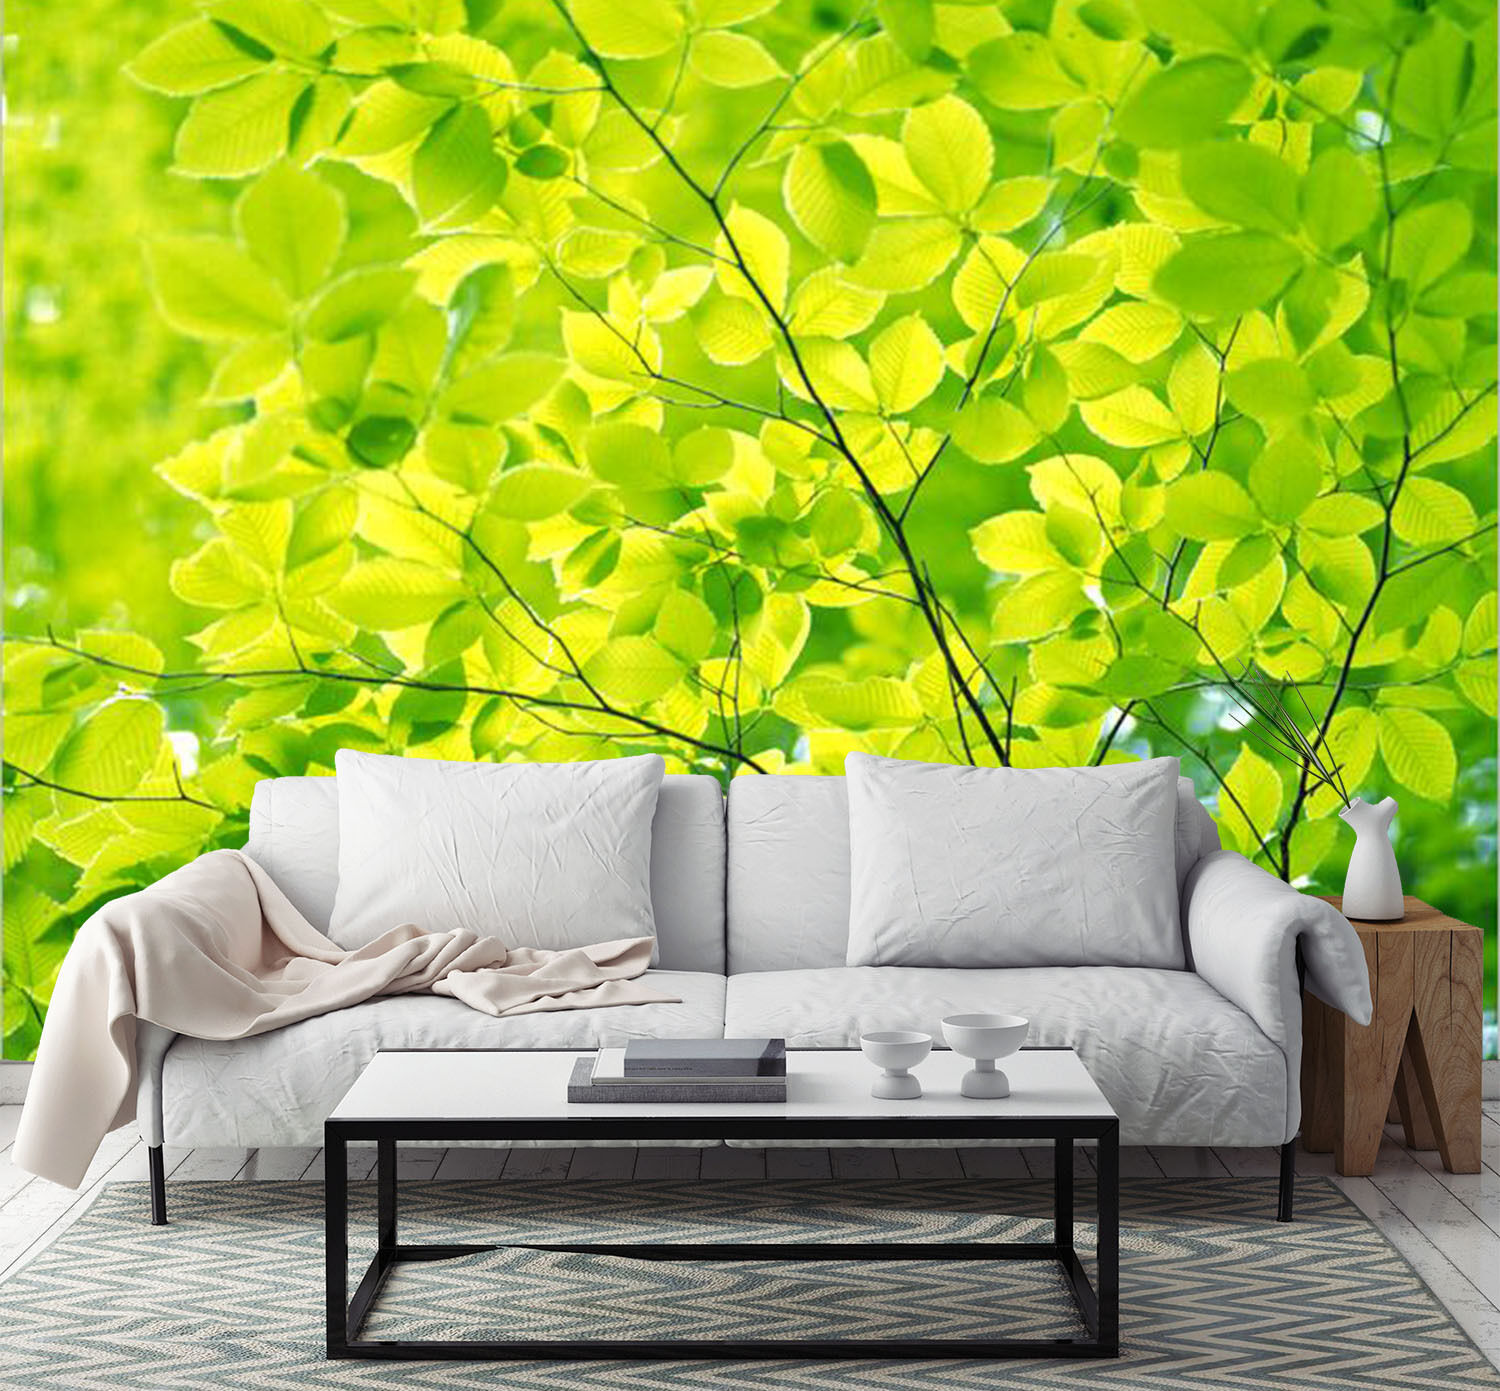 3D Lush Tree Leaves 2767 Paper Wall Print Wall Decal Wall Deco Indoor Murals